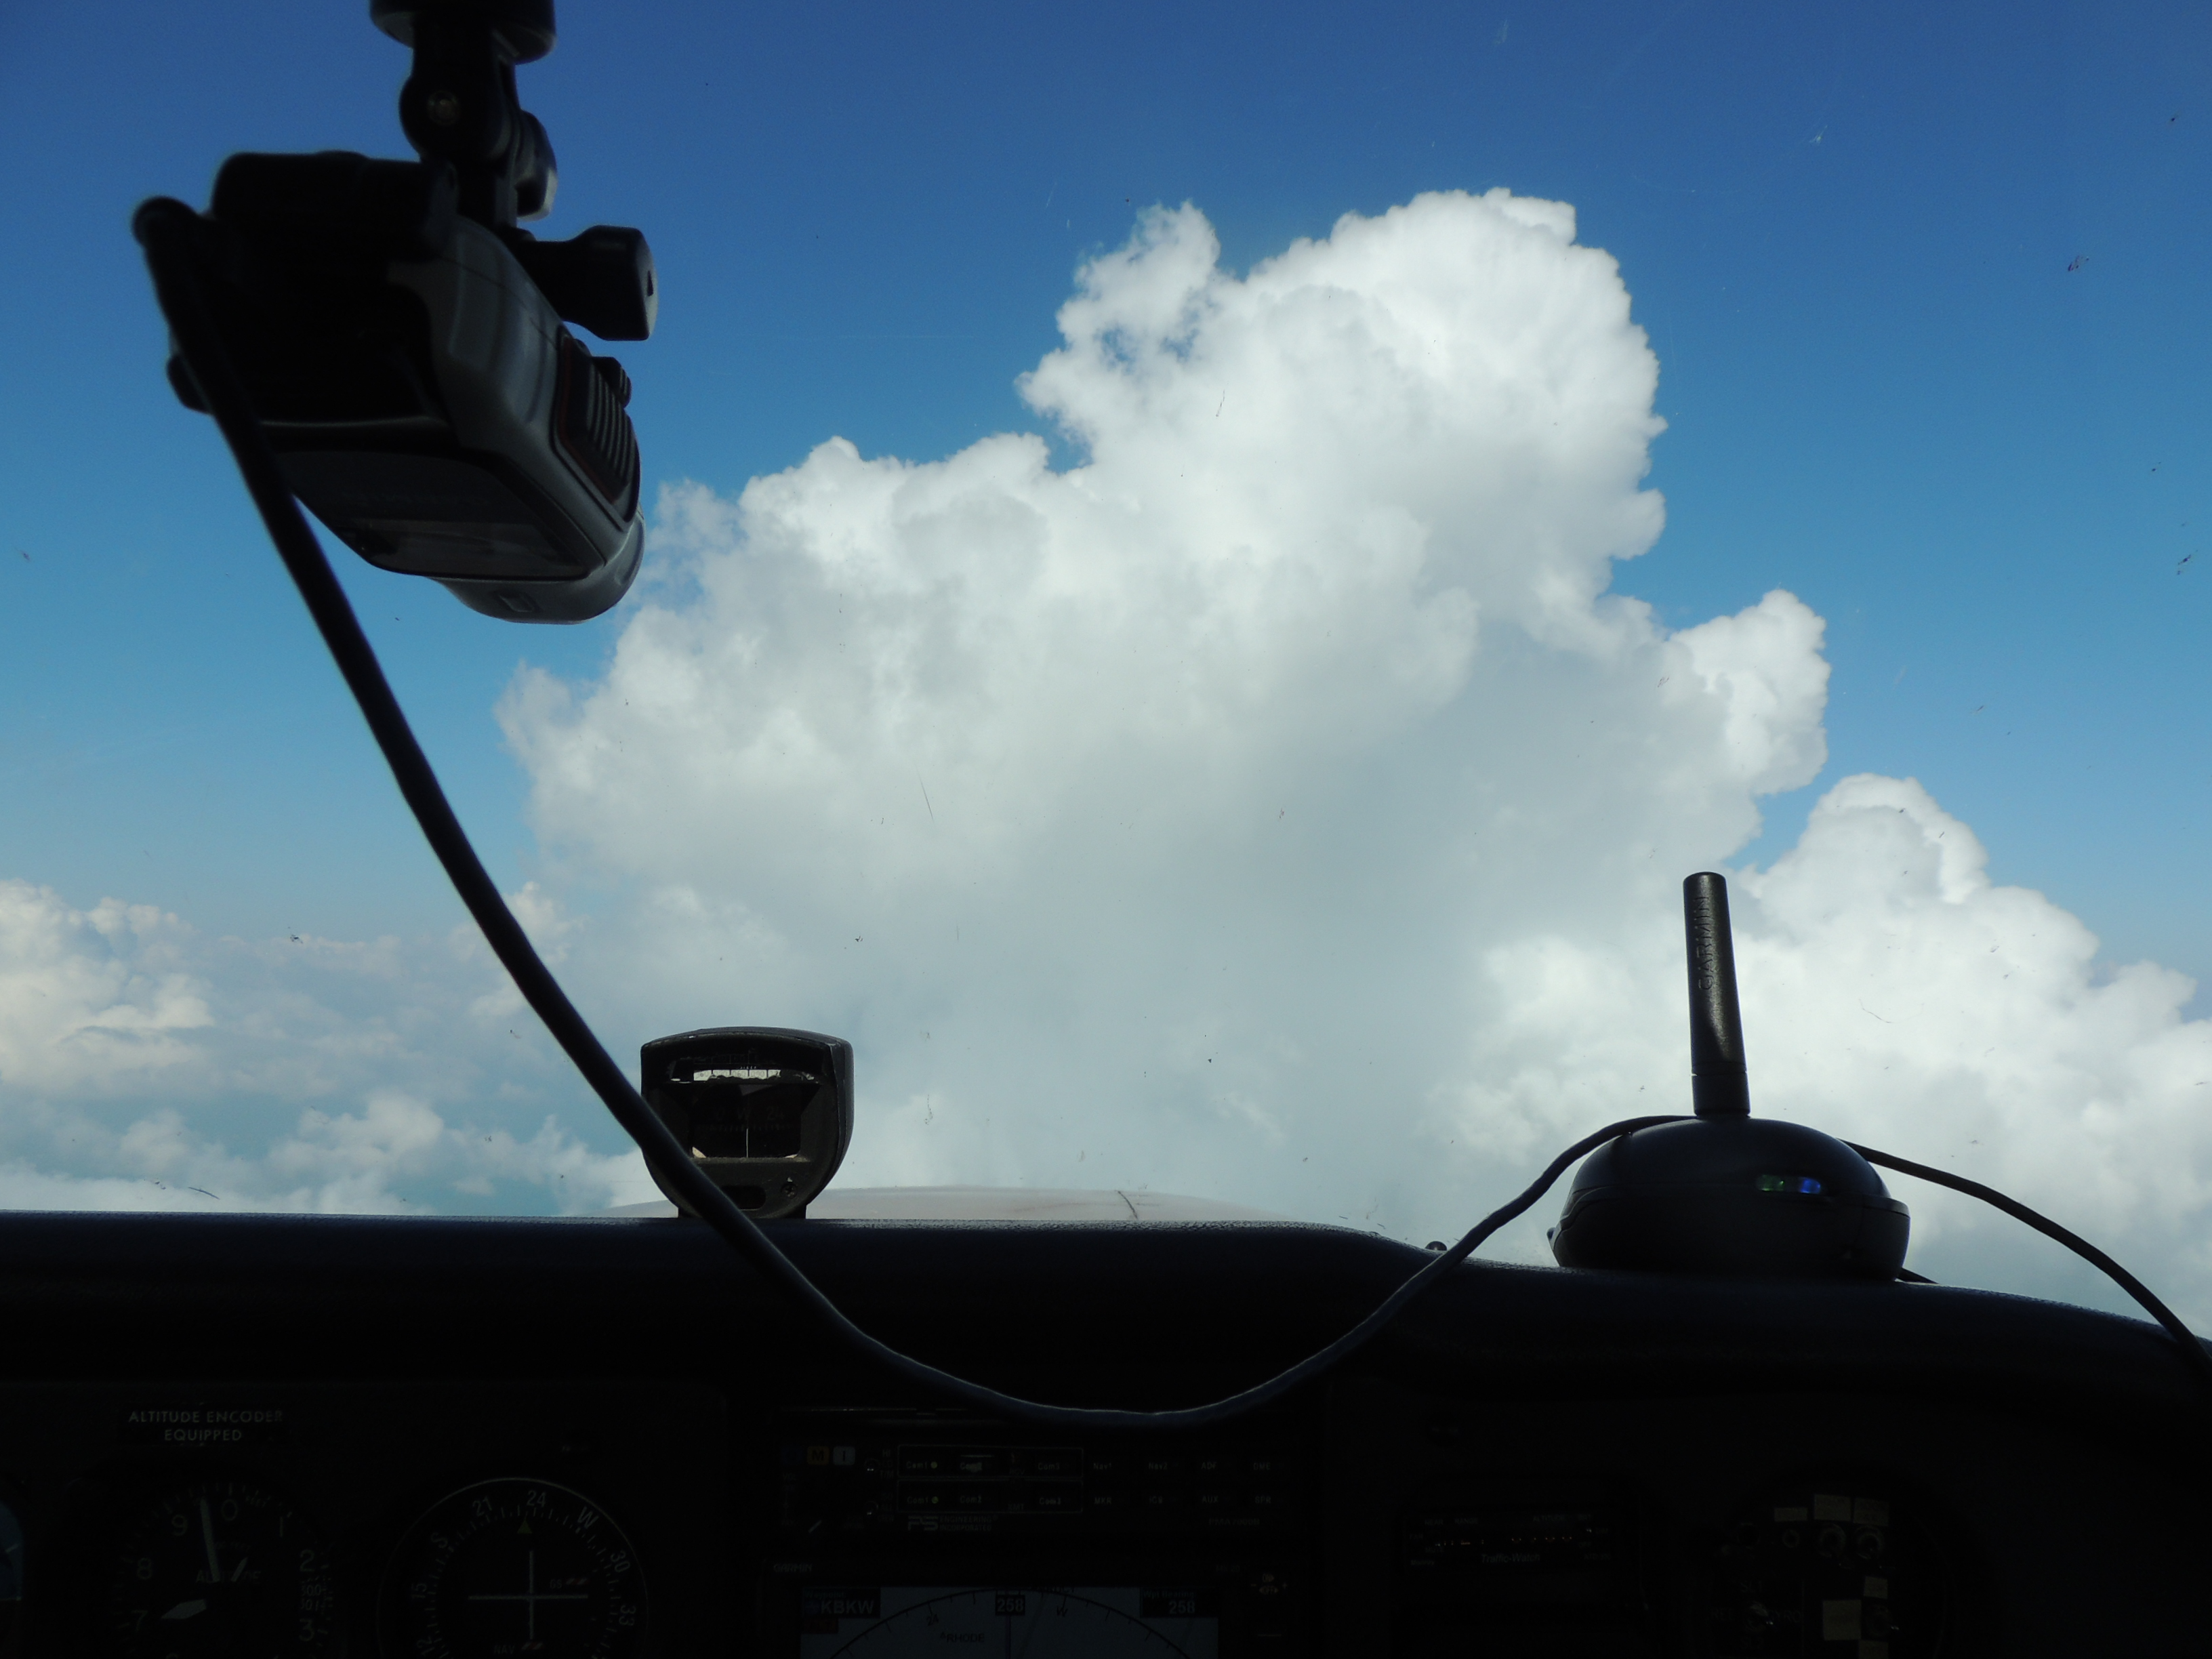 Heading thru some clouds at 7000 feet on our way to Beckley WV